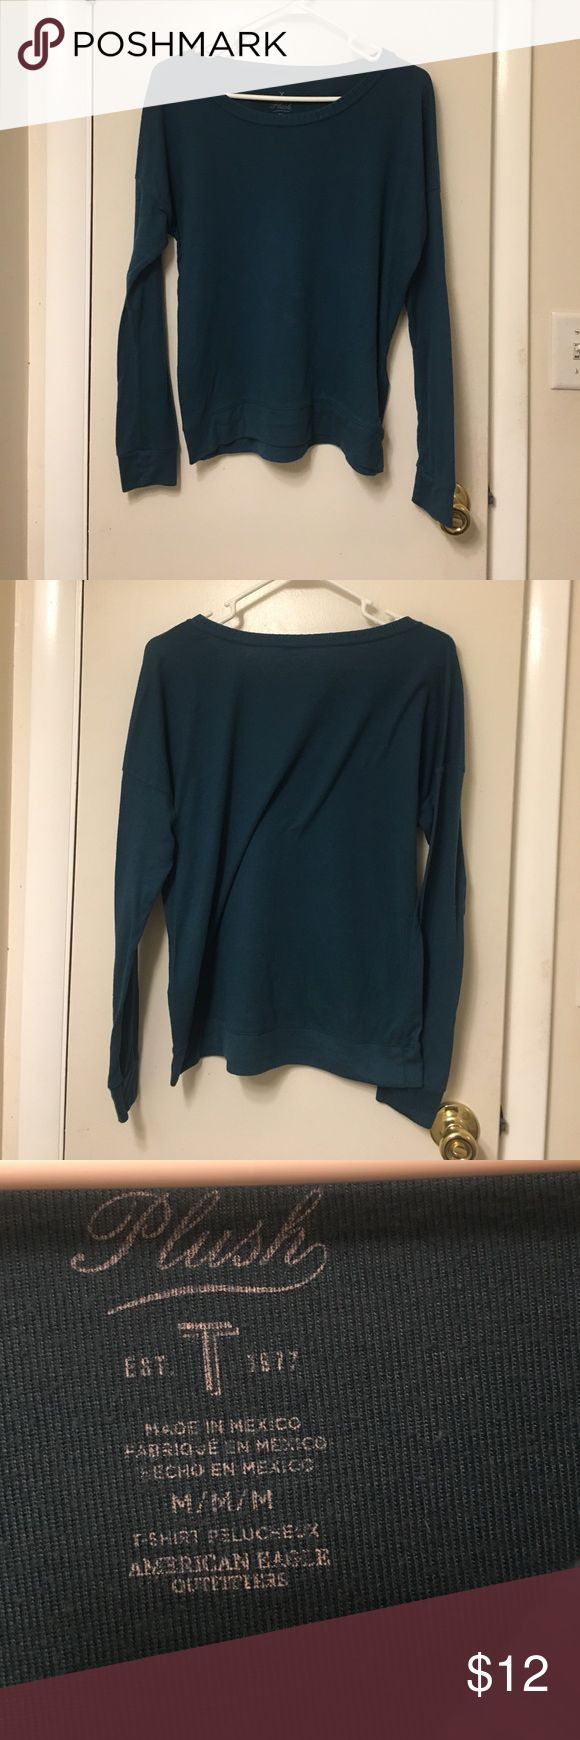 American Eagle Sweater Plush sweater from American Eagle. Soft and comfy. Size medium. Hunter green color. Purchase or place a bid! Bundle with other items for an even better deal! I can give discounts!  I'm open to bids! We can negotiate price! American Eagle Outfitters Sweaters Crew & Scoop Necks